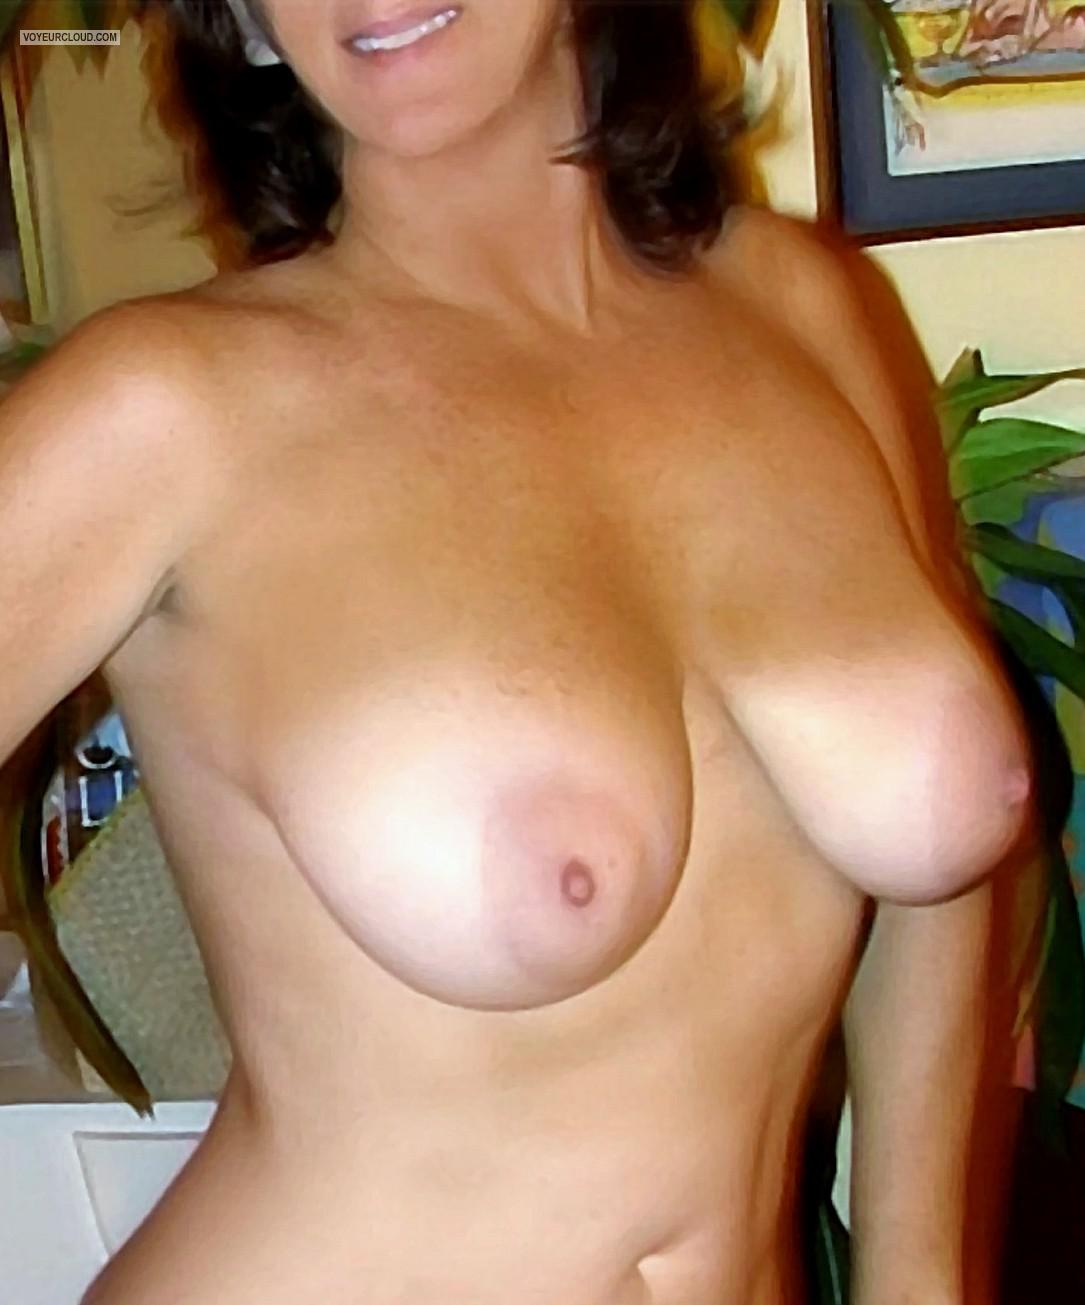 Tit Flash: Wife's Medium Tits - Perfecto from United States